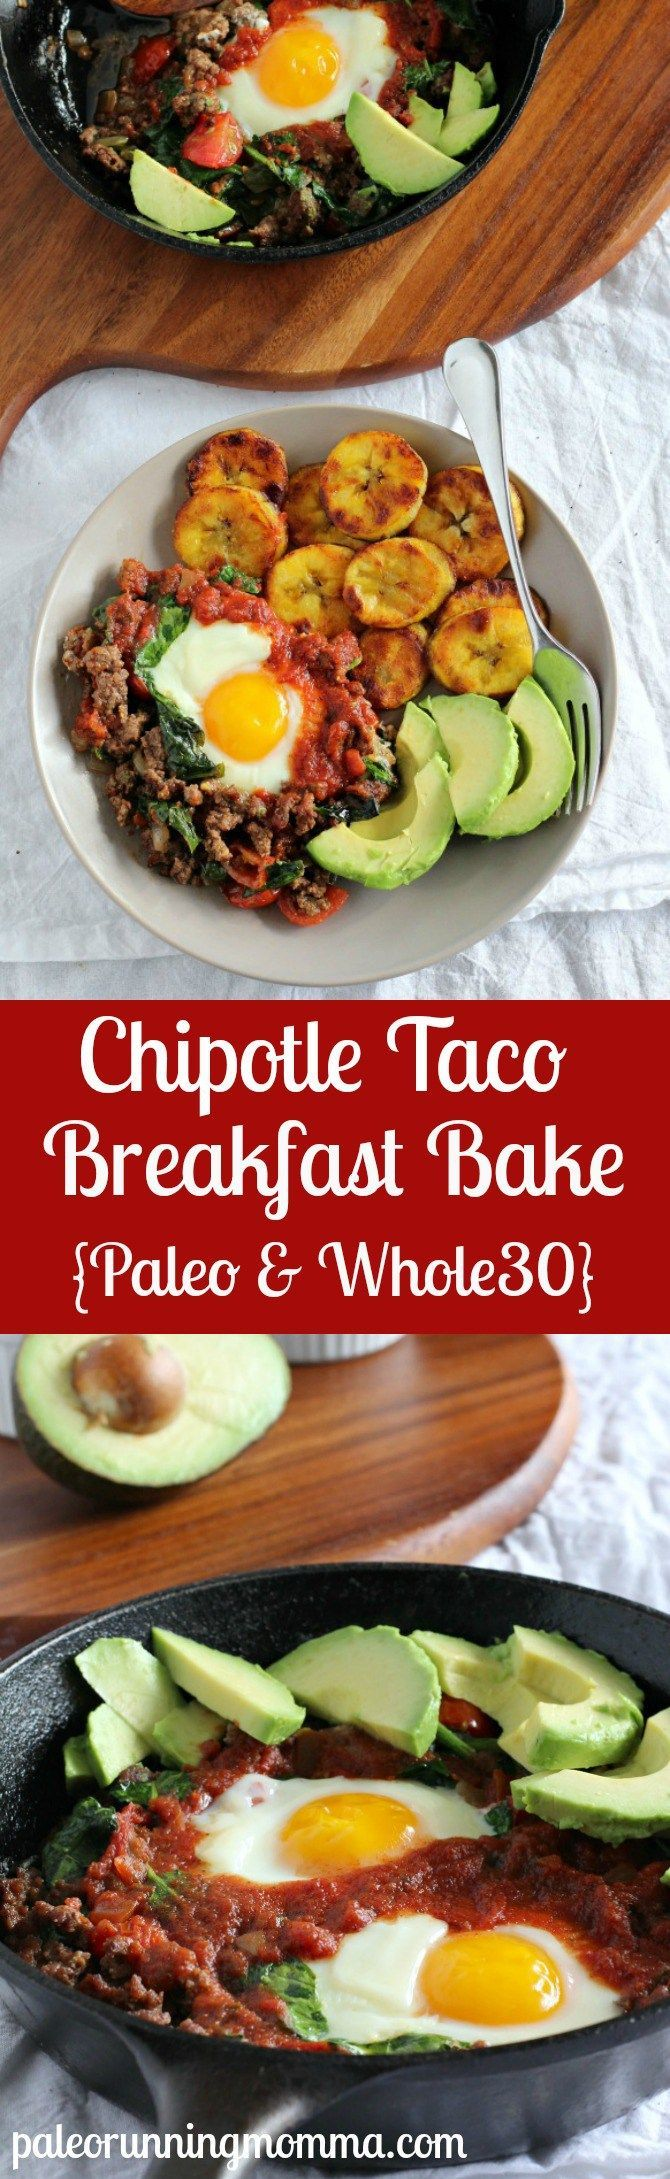 This delicious chipotle taco breakfast bake is perfect for anyone on the Paleo diet. It's grain-free and dairy-free, making this dish the perfect healthy breakfast recipe.